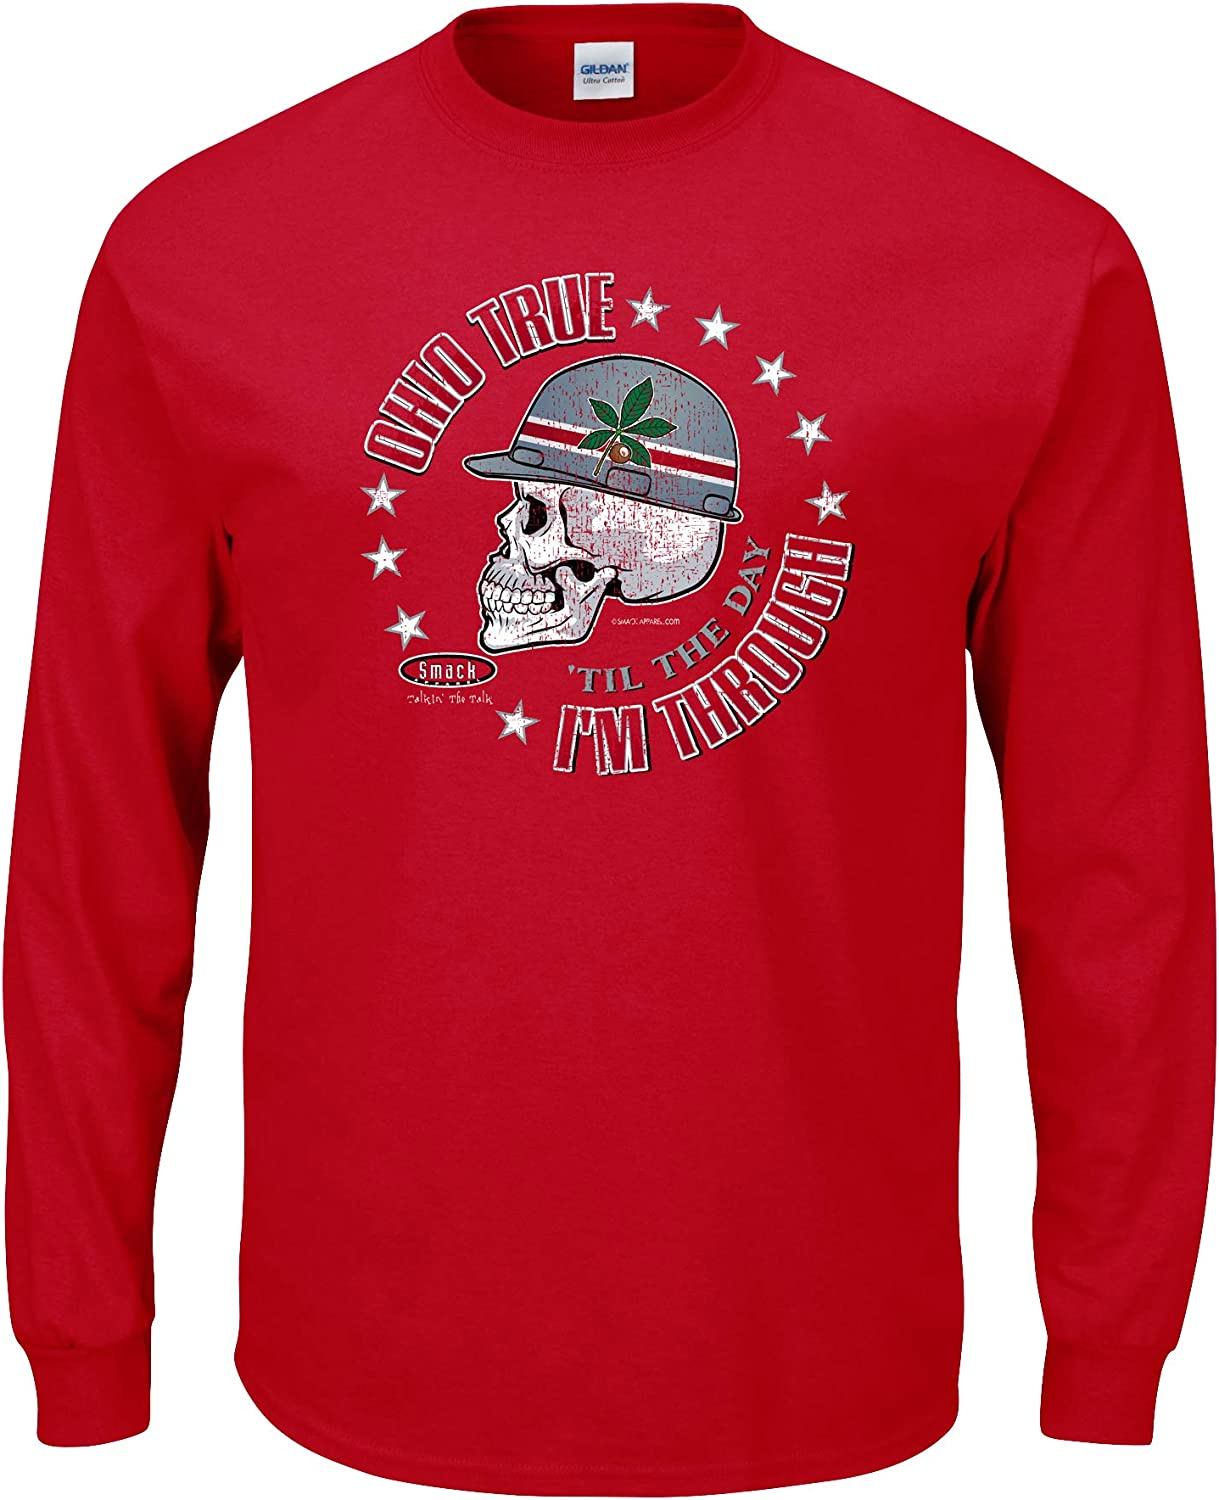 Smack Apparel Ohio State Football Fans. Ohio True 'Til My Days are Through. Red Long Sleeve TShirt (Sm5X)